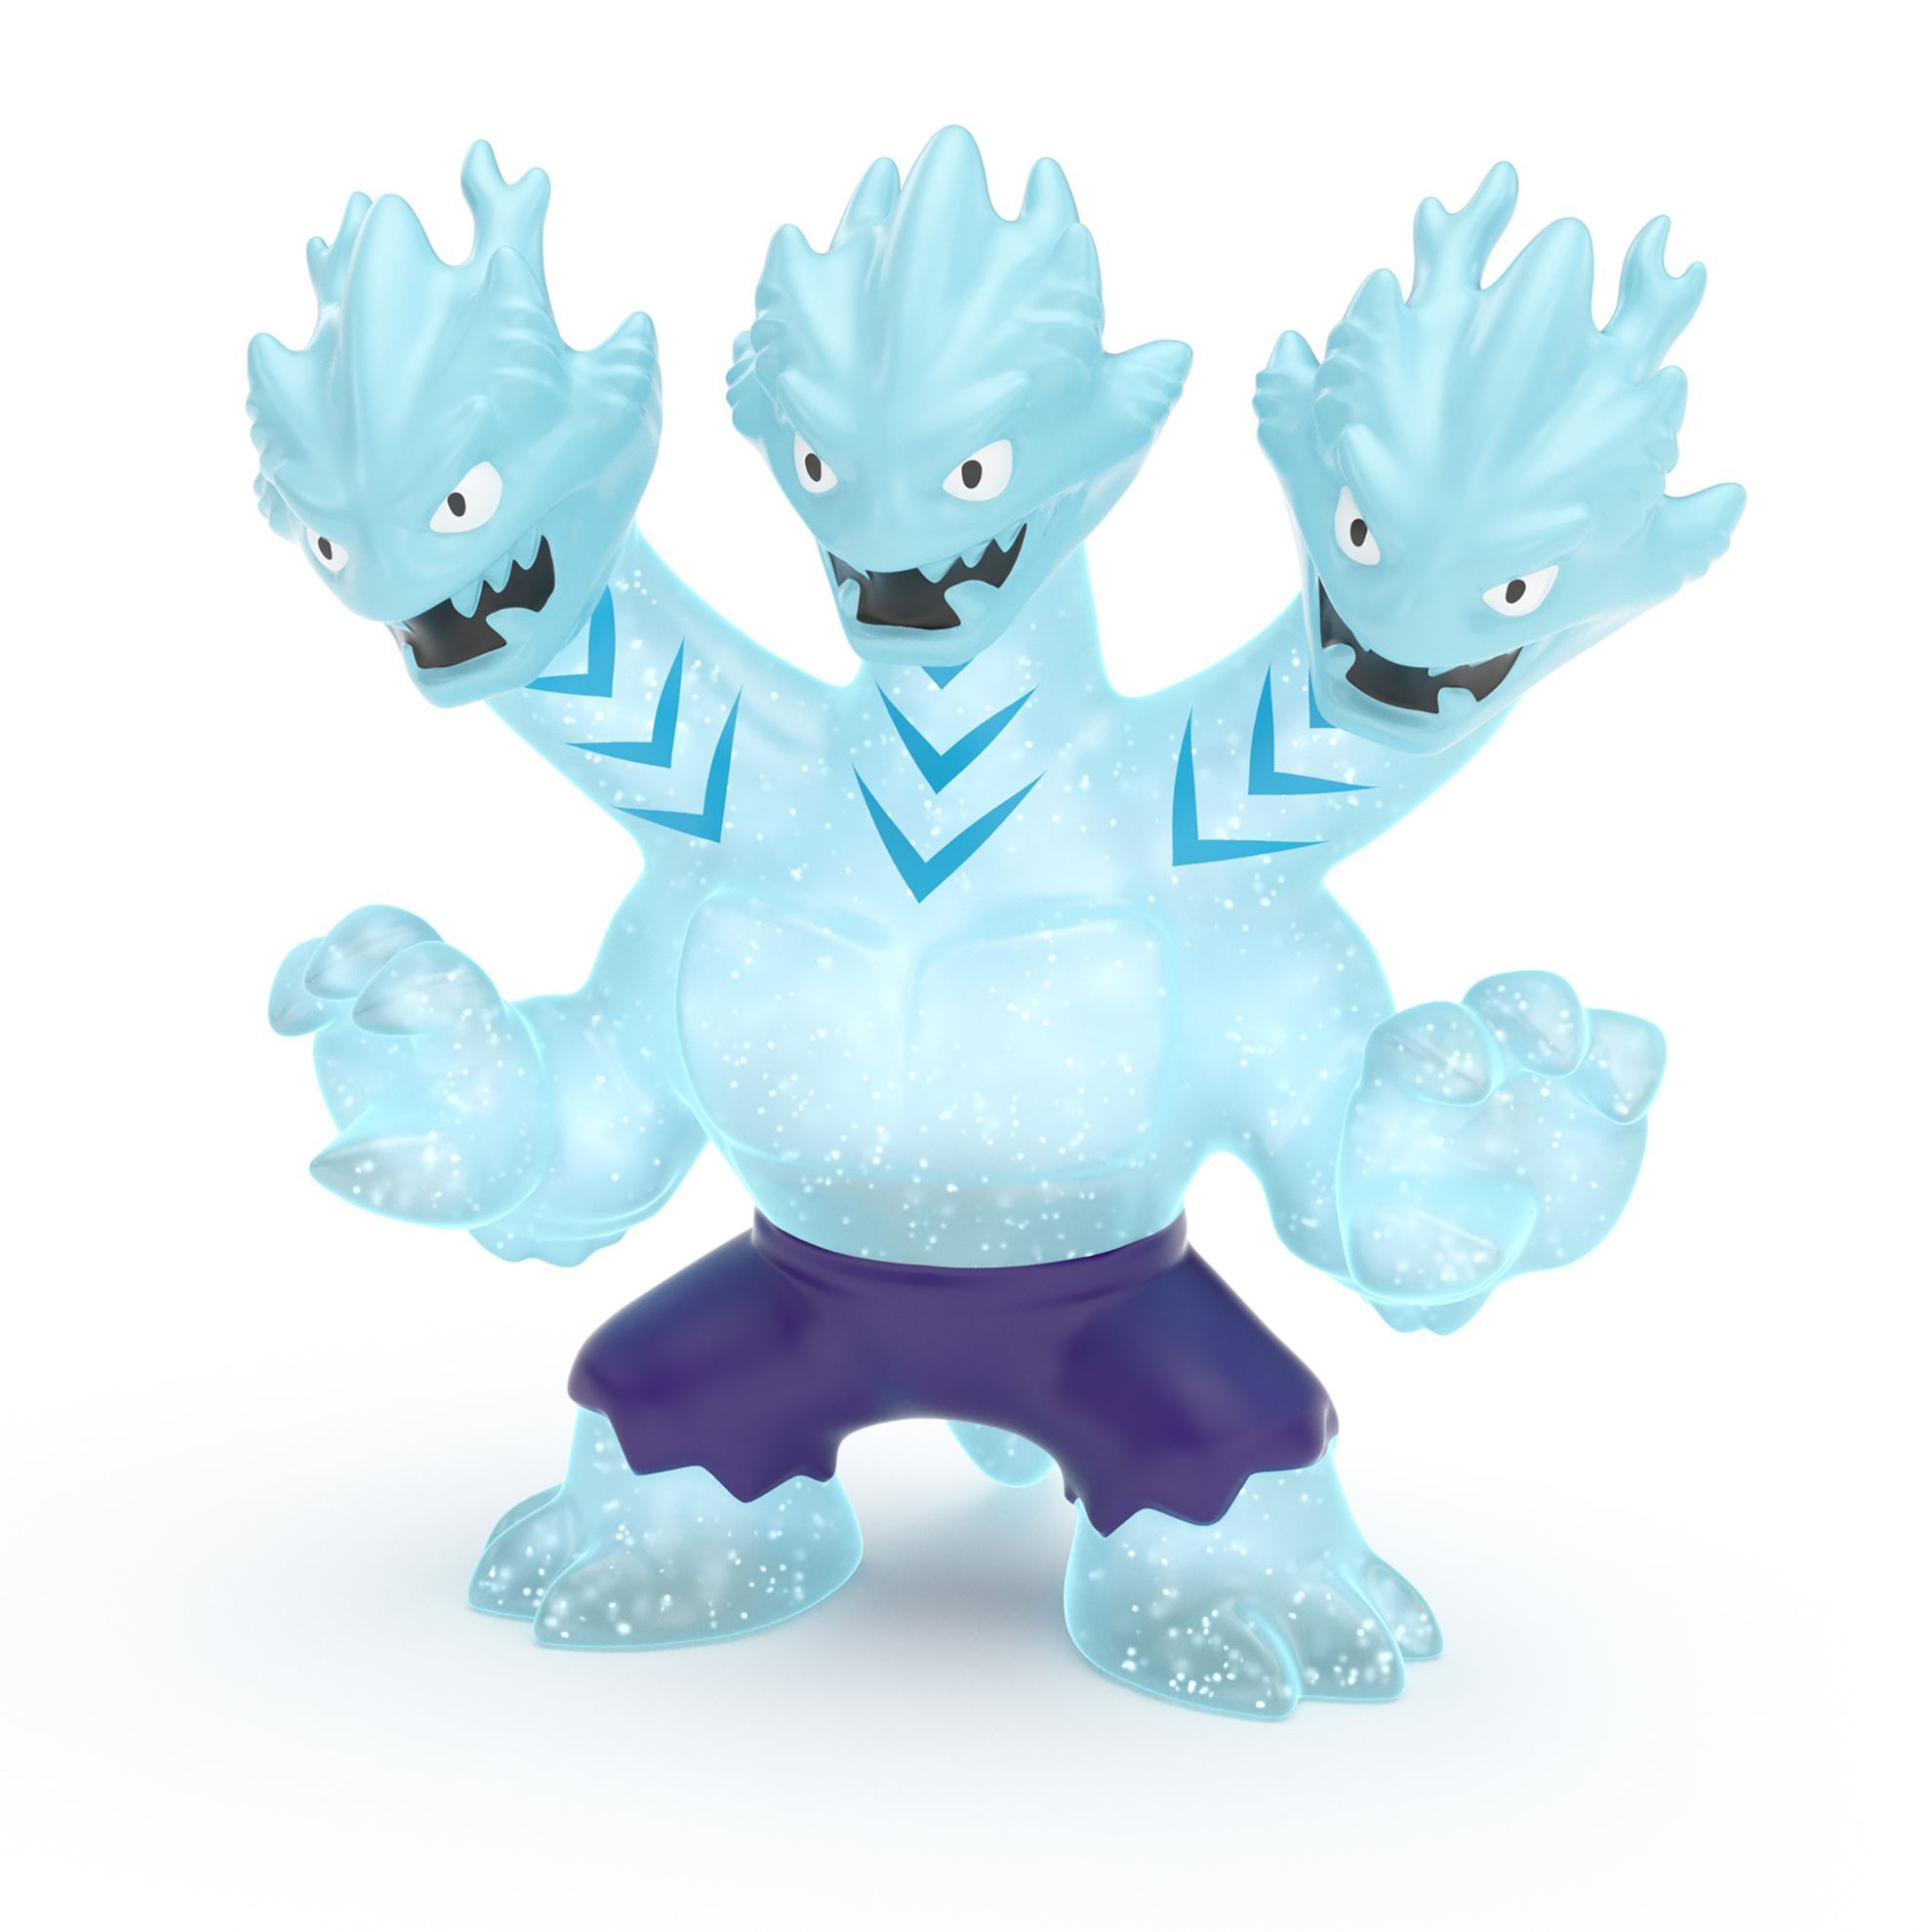 Picture of Heroes of Goo Jit Zu toys - Hydra